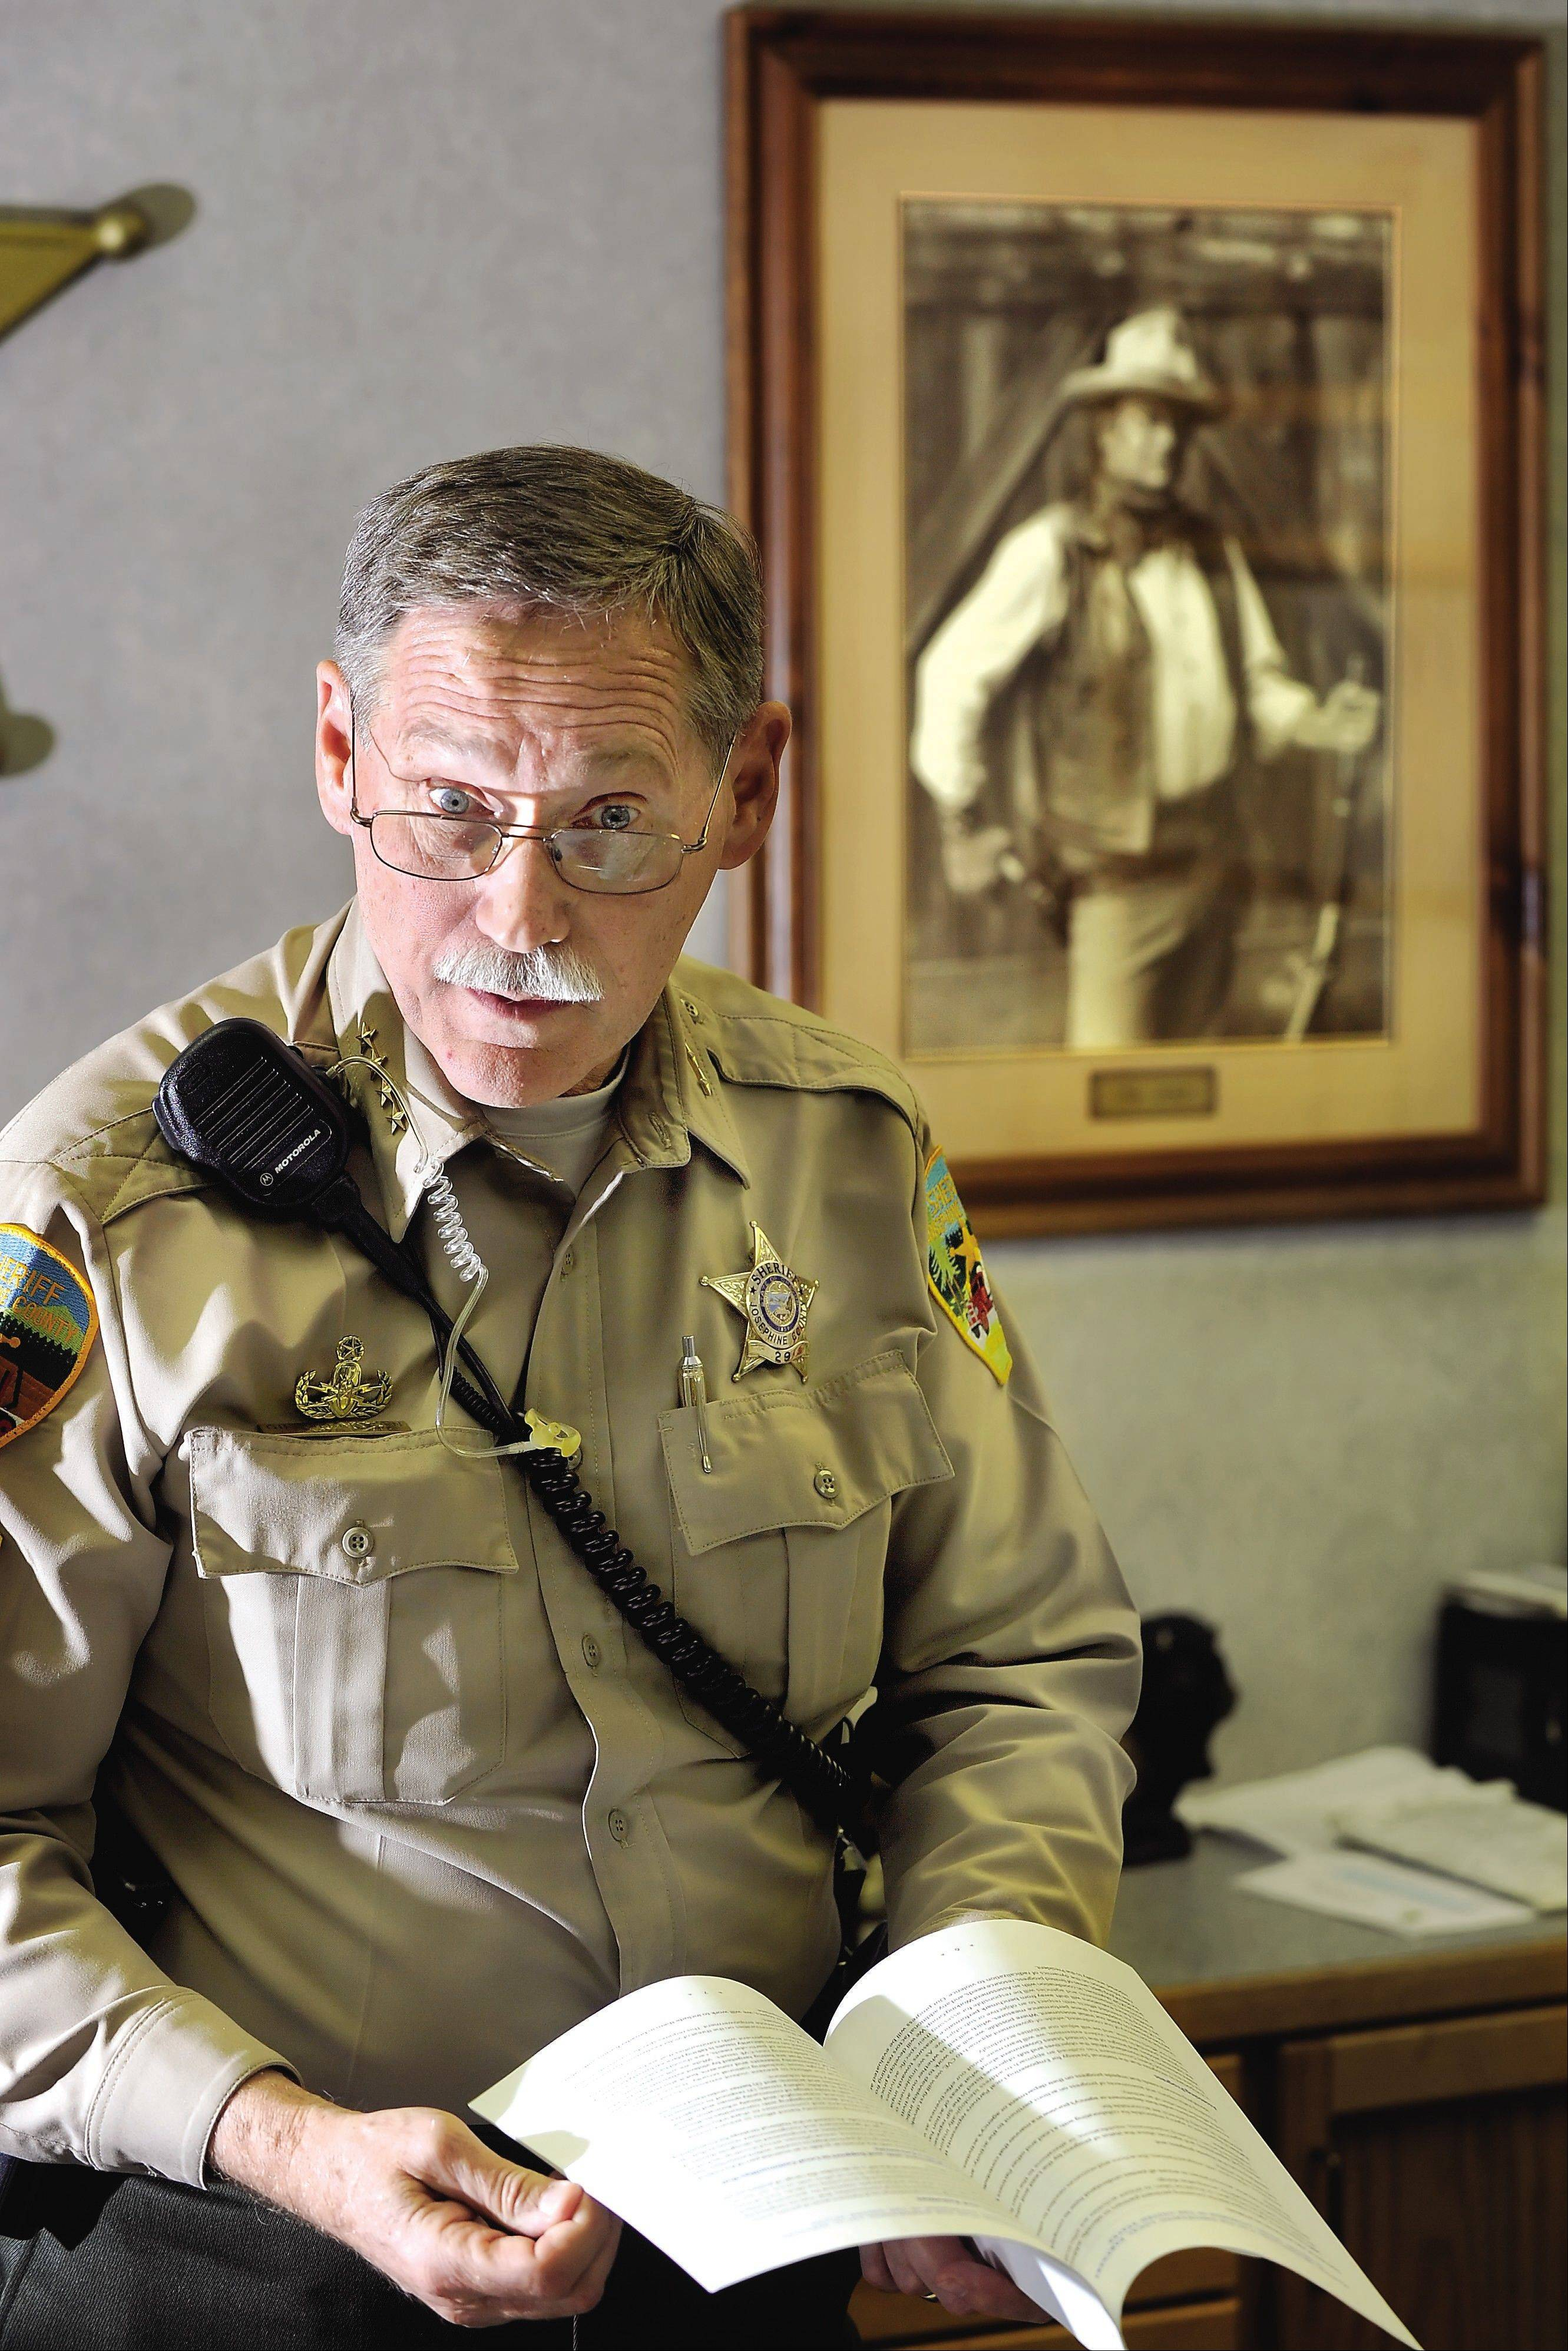 Josephine County Sheriff Gil Gilbertson stands in his office in Grants Pass, Ore. Gilbertson is one of a growing number of rural sheriffs and lawmakers vowing to ignore any new gun control legislation, or even make it a crime for federal officials to enforce federal gun policy.